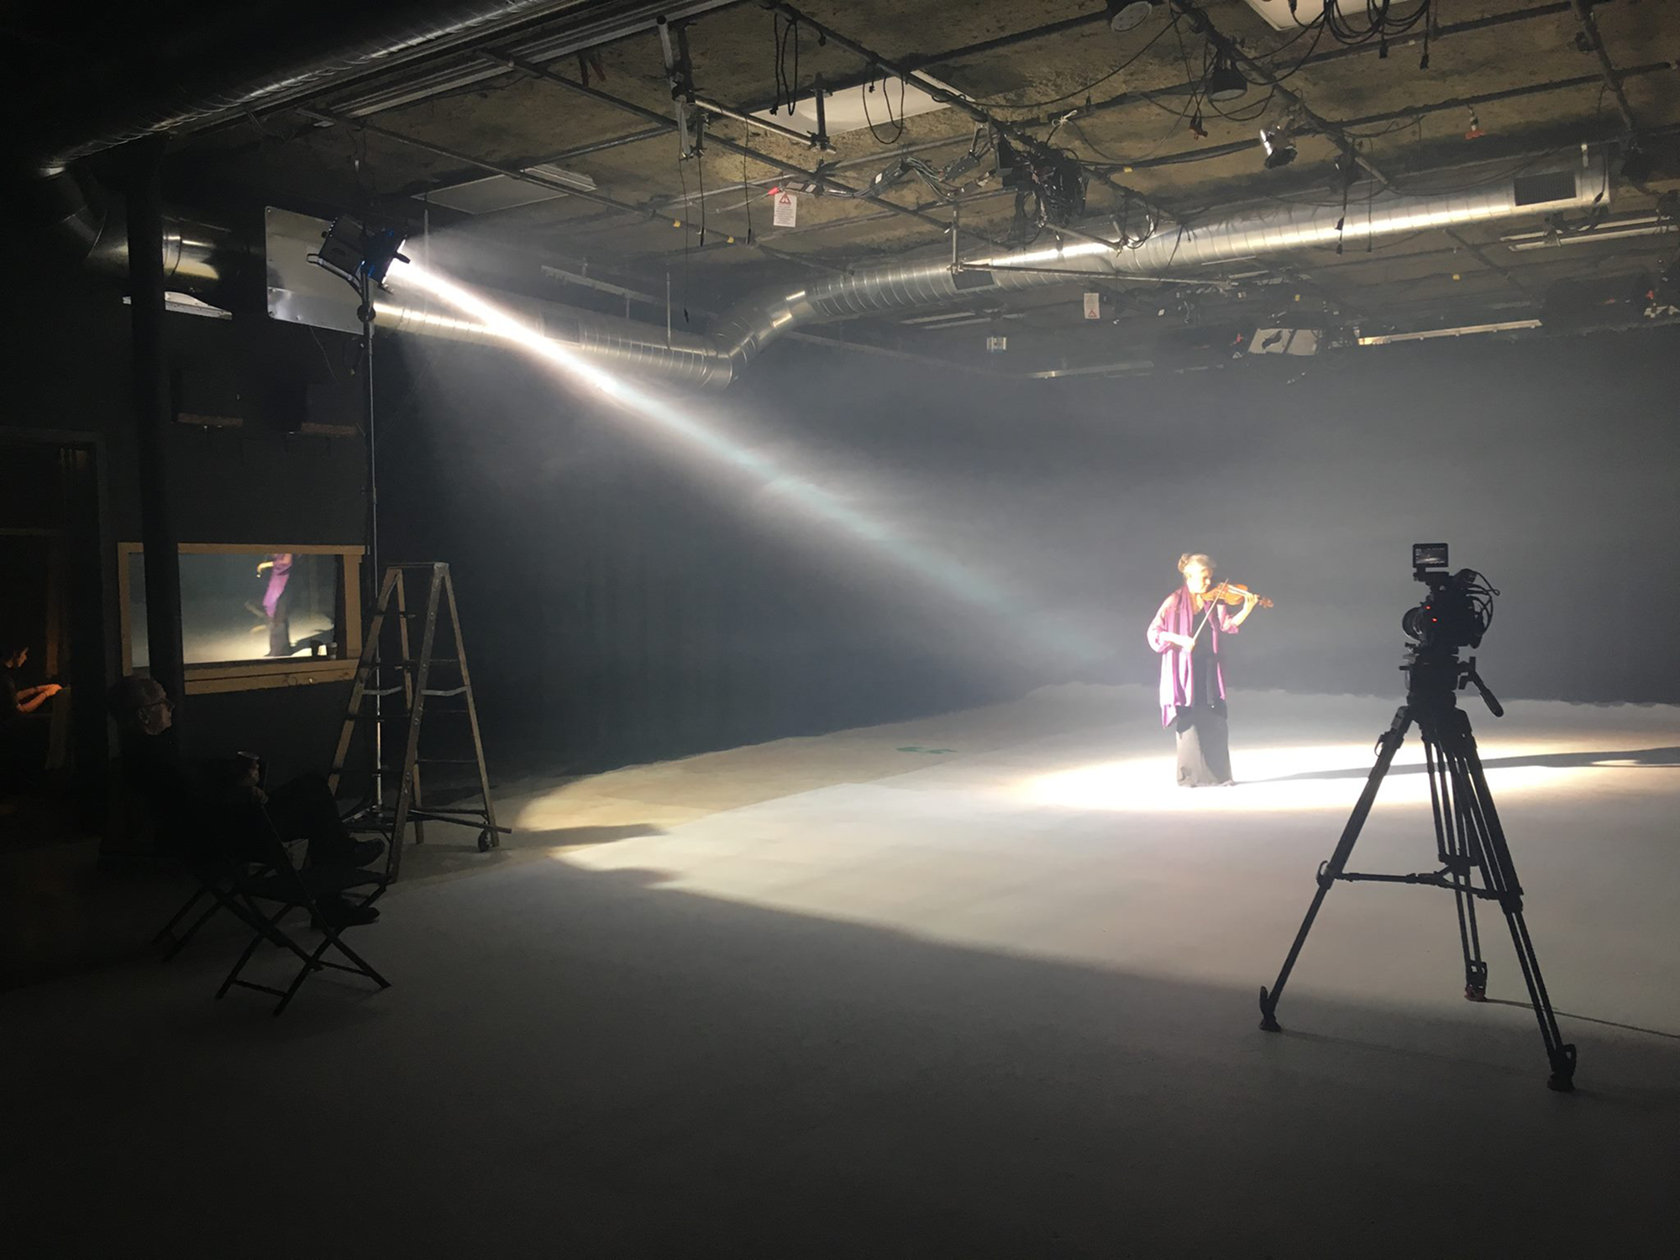 Studio  1 is a drive-in sound stage with a large cyclorama wall and kitchen. Studio 2 is an 850 square foot green screen sound stage. Both have cold lighting grids.